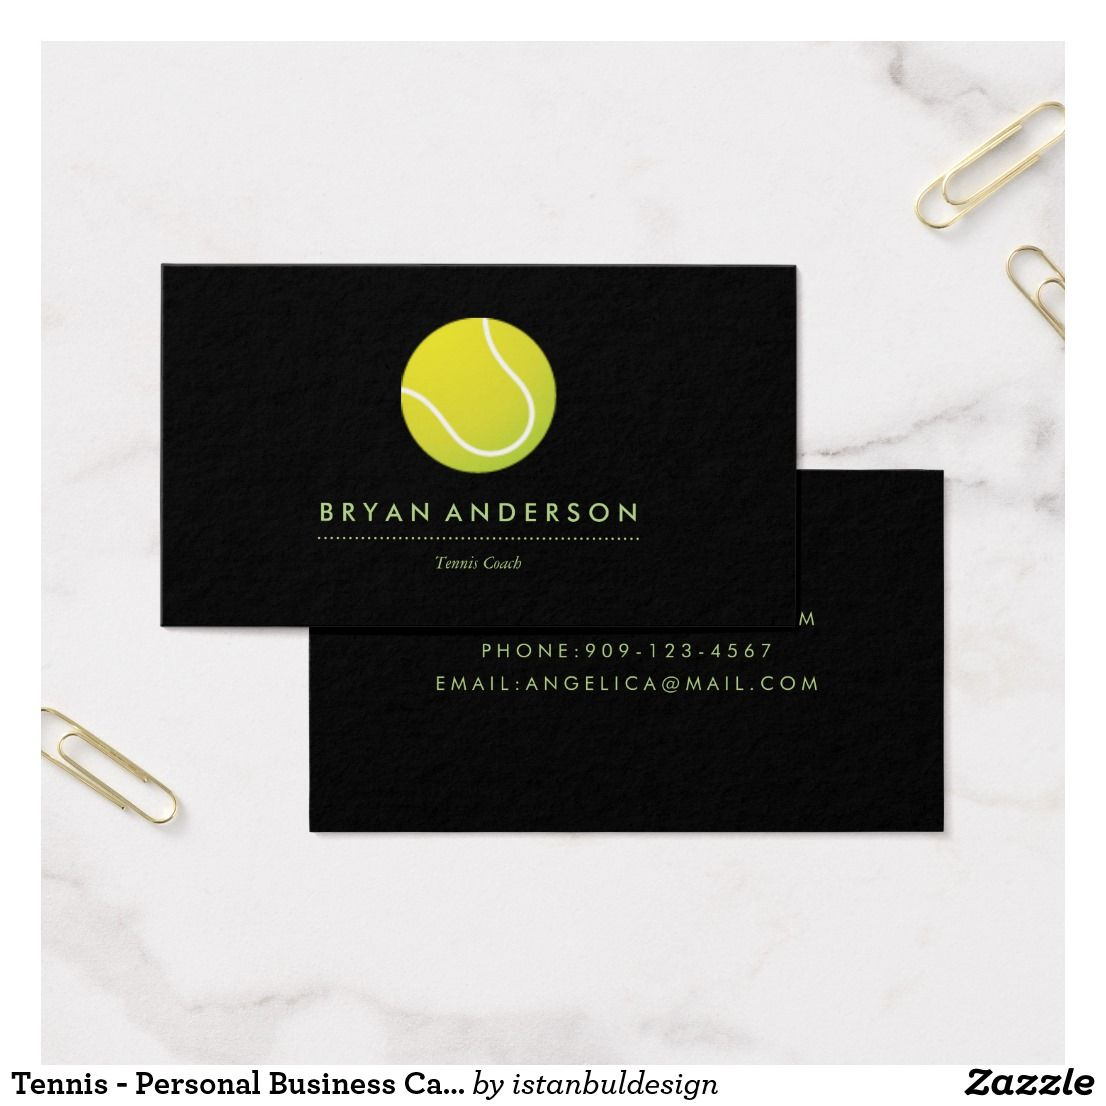 Tennis - Personal Business Card   Business cards and Business